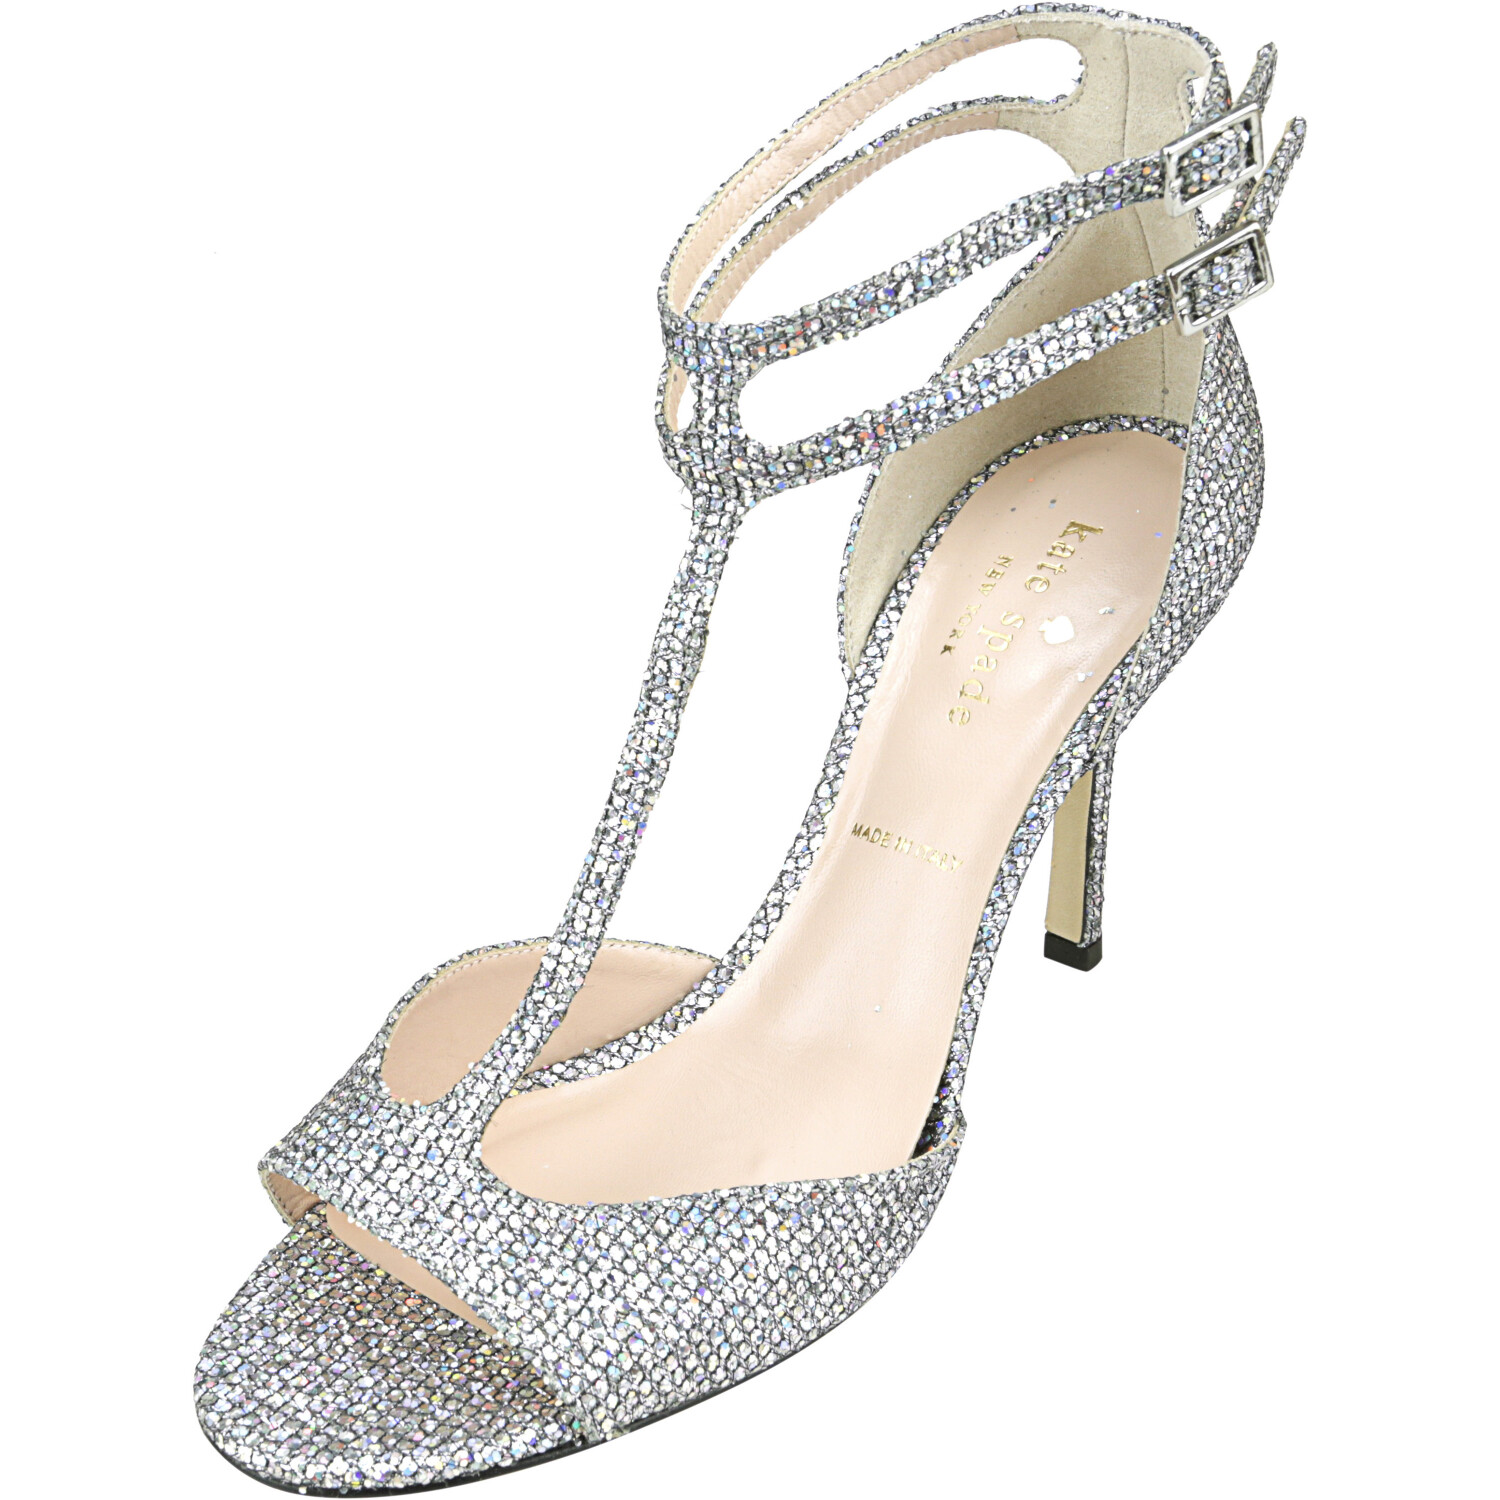 Kate Spade Women's Ines Silver Iridescent Starlight Ankle-High Leather Heel - 7M